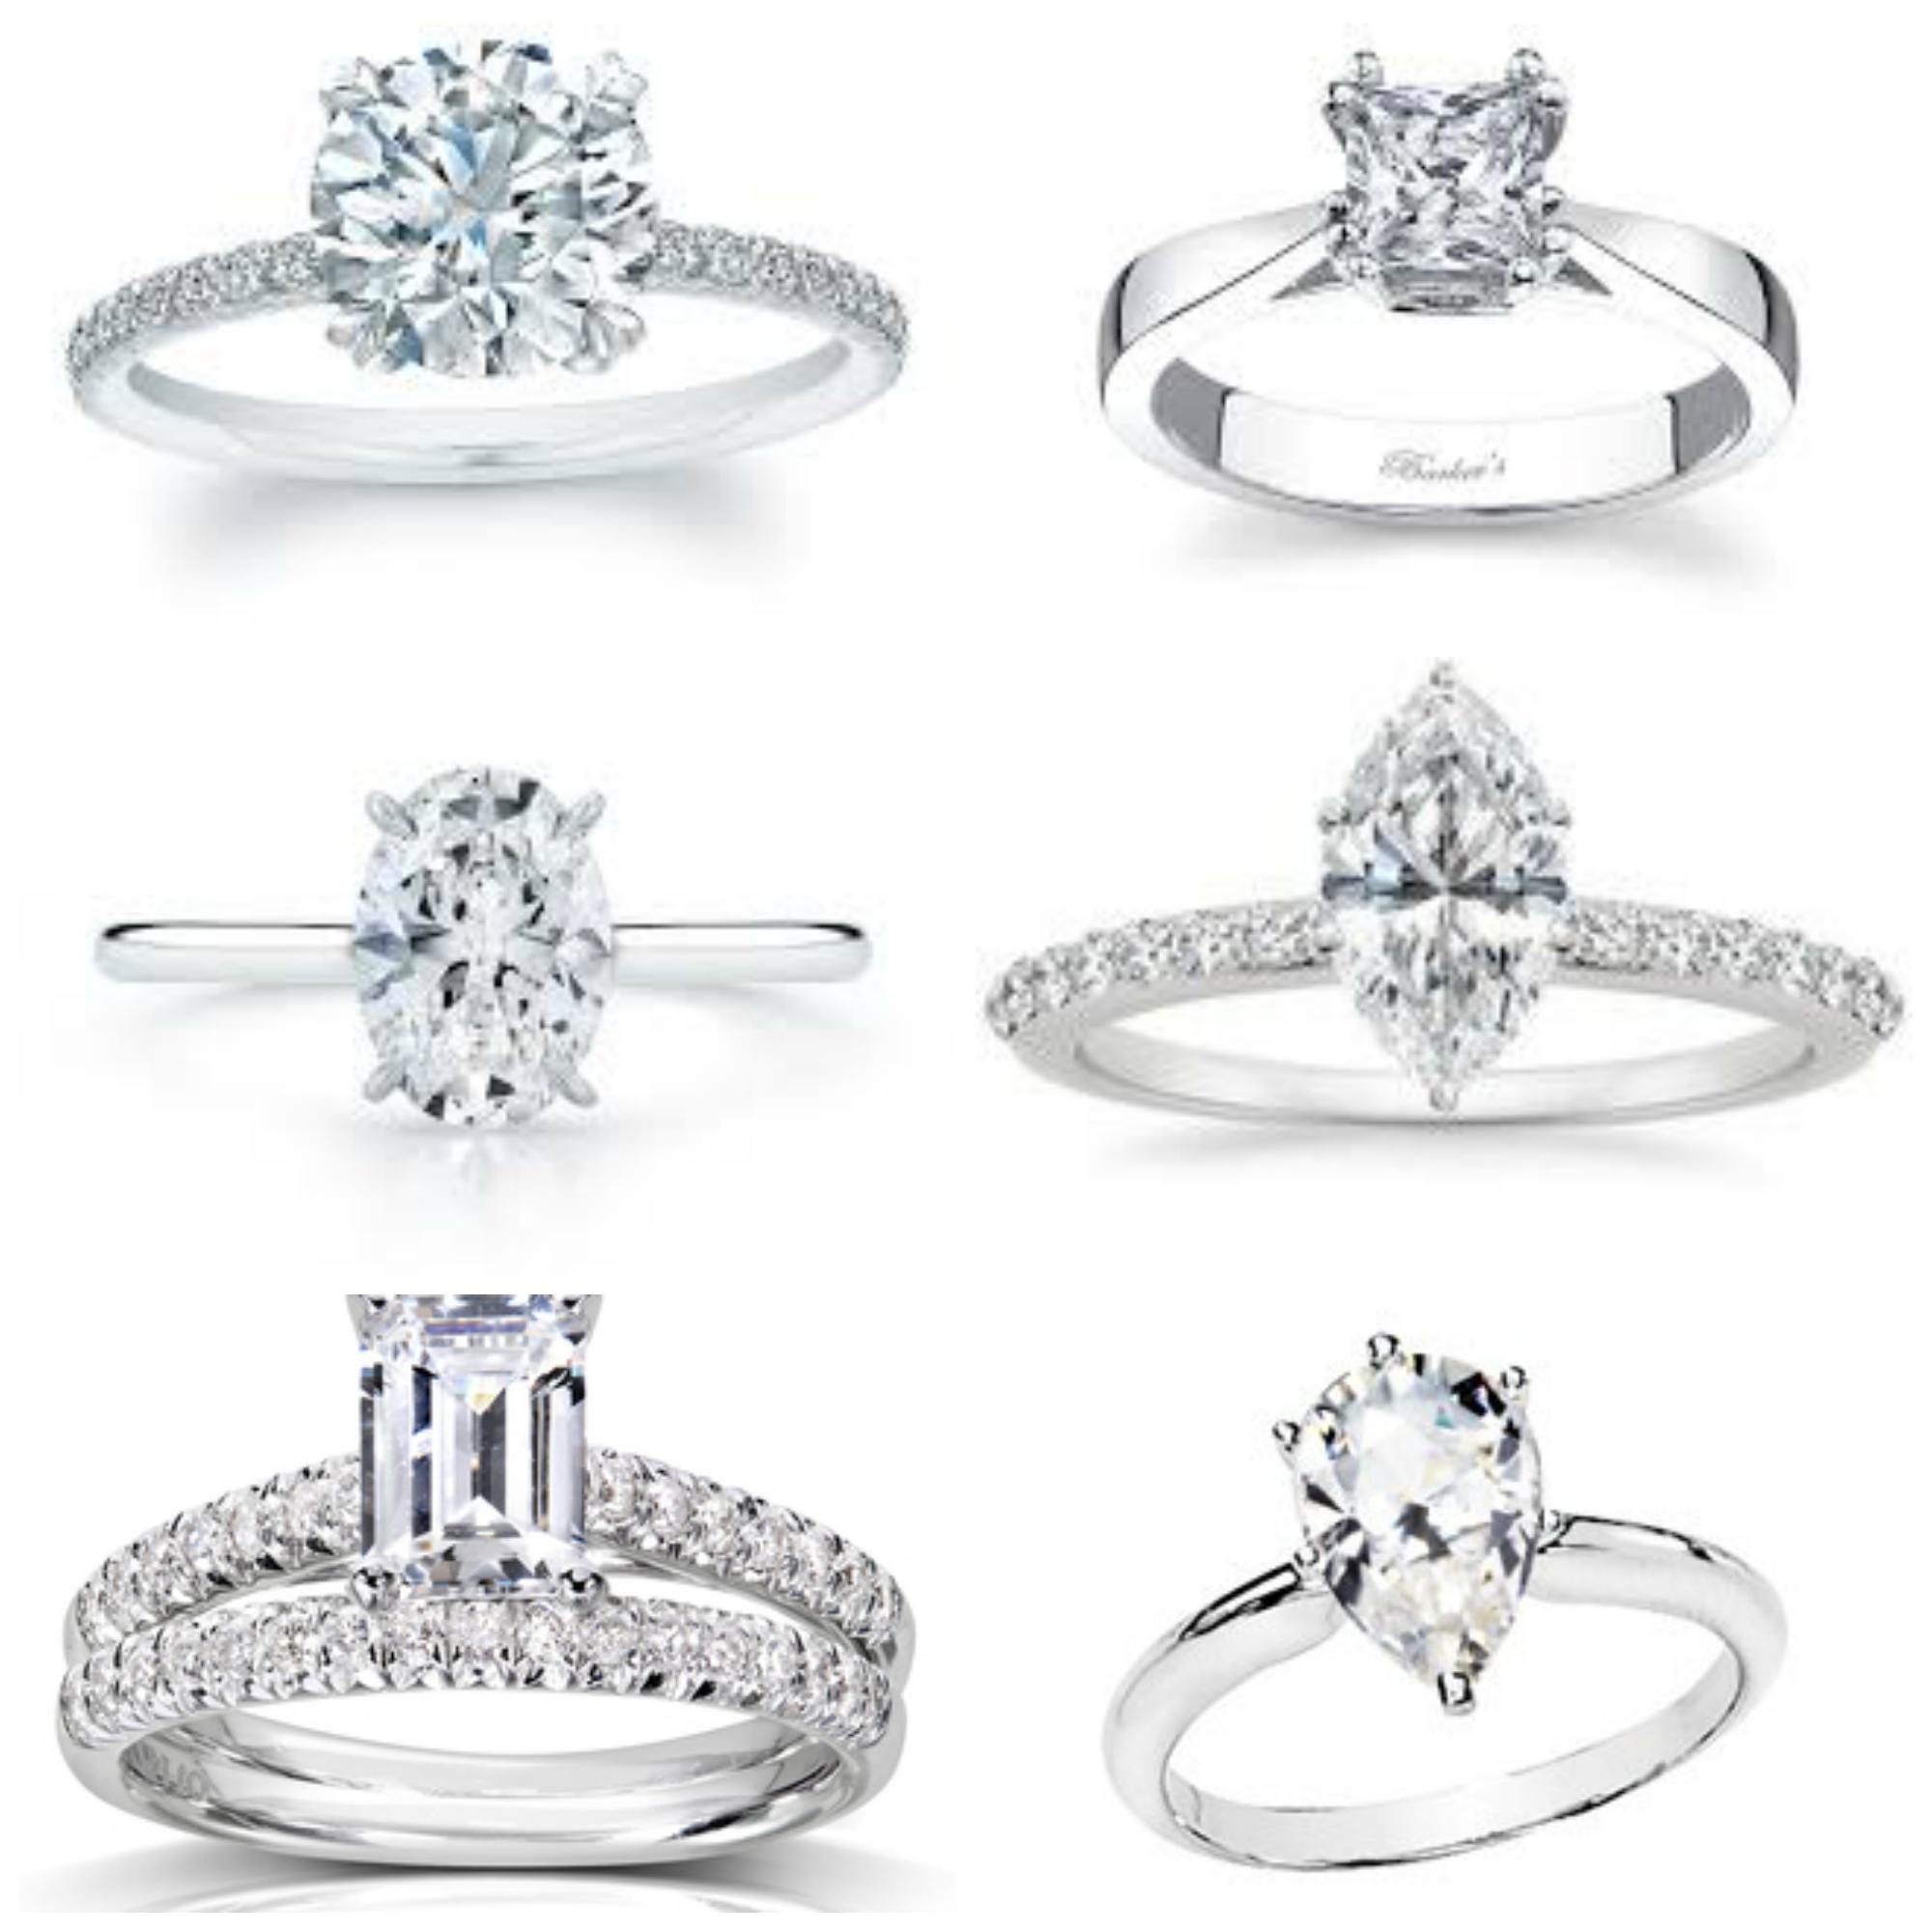 Blog Traditionaldiamondshapes1